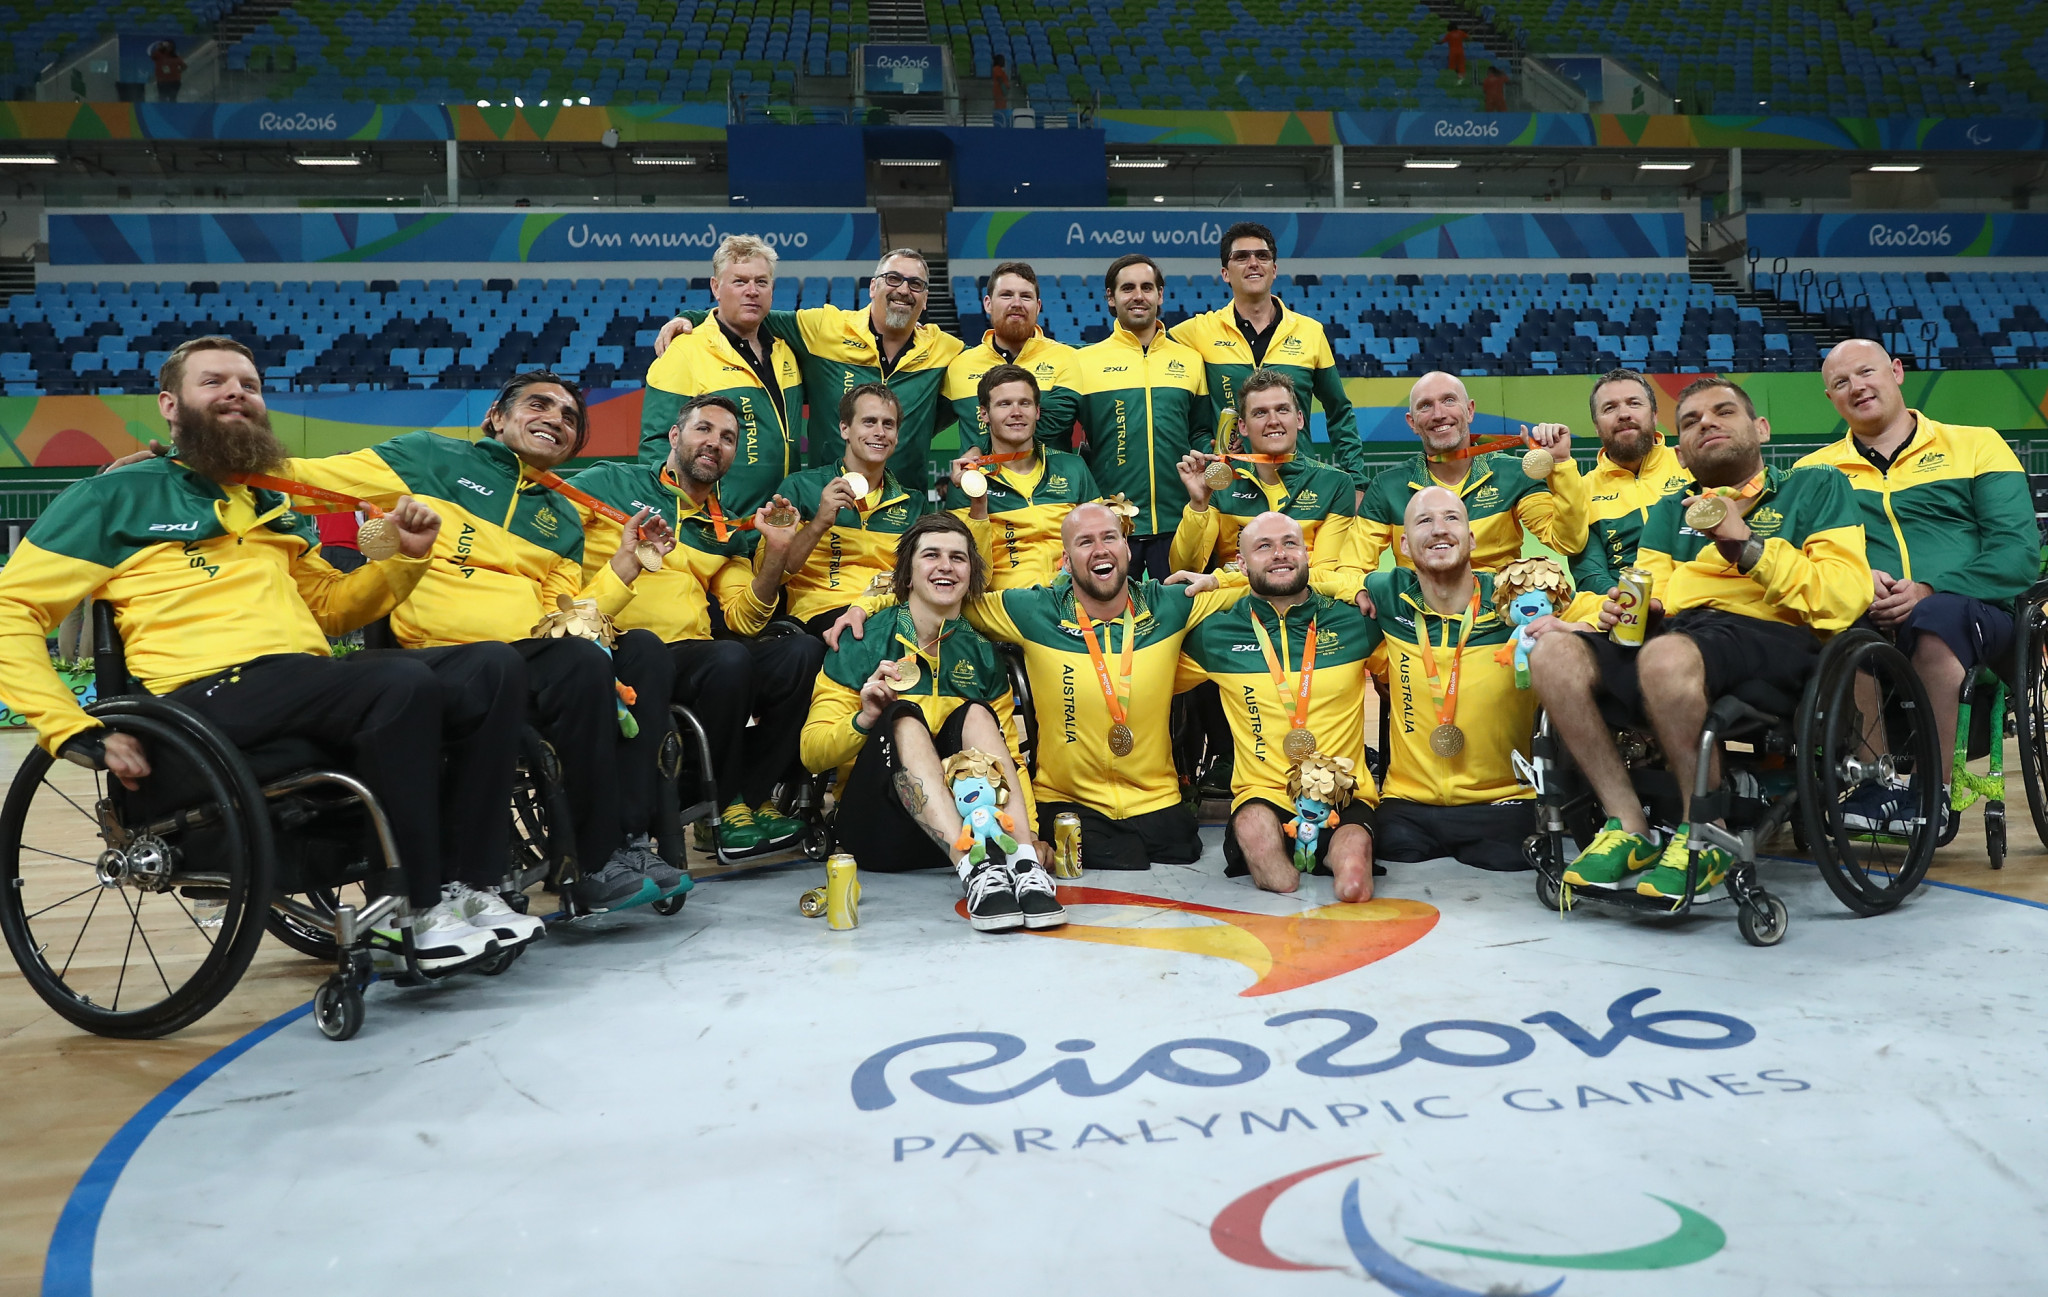 Australia targeting home success at Wheelchair Rugby World Championships